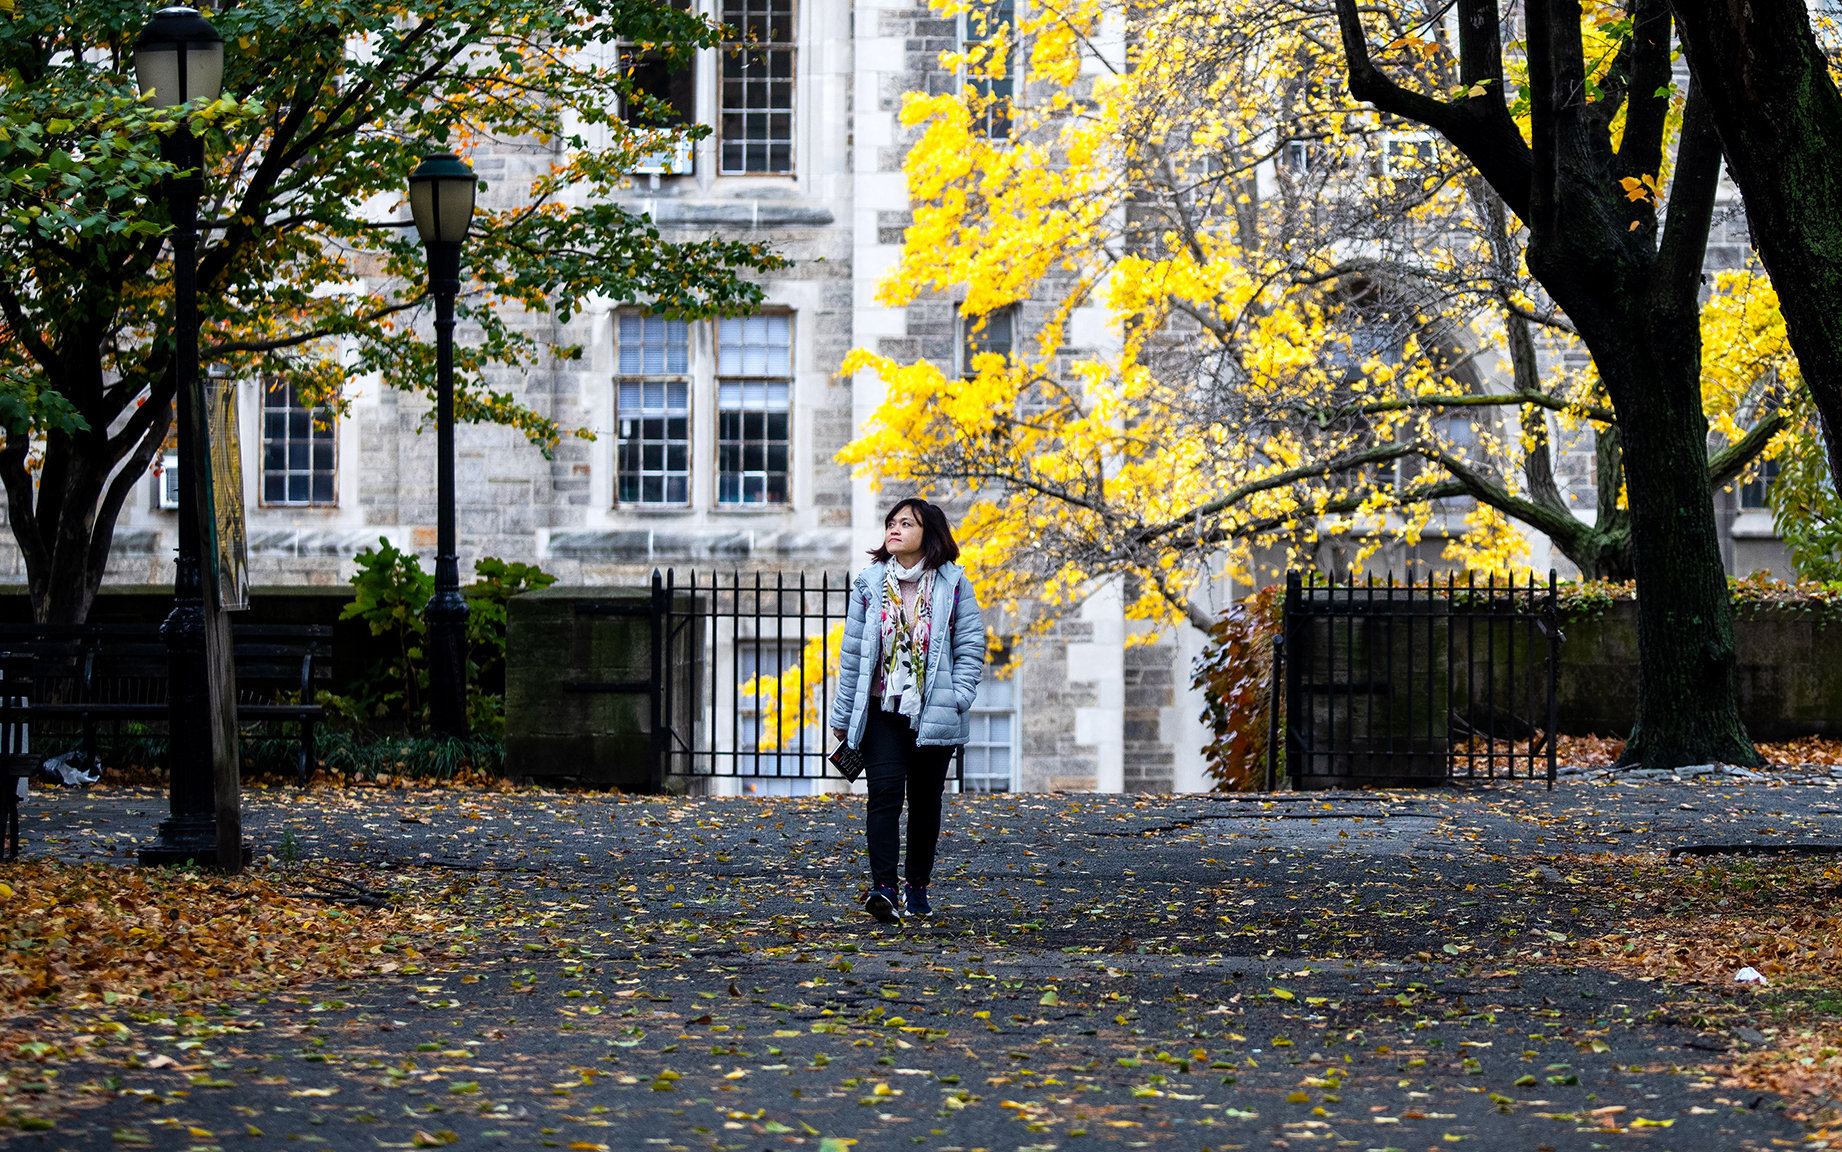 Hong Hoang walks in the park on a sunny, fall day.